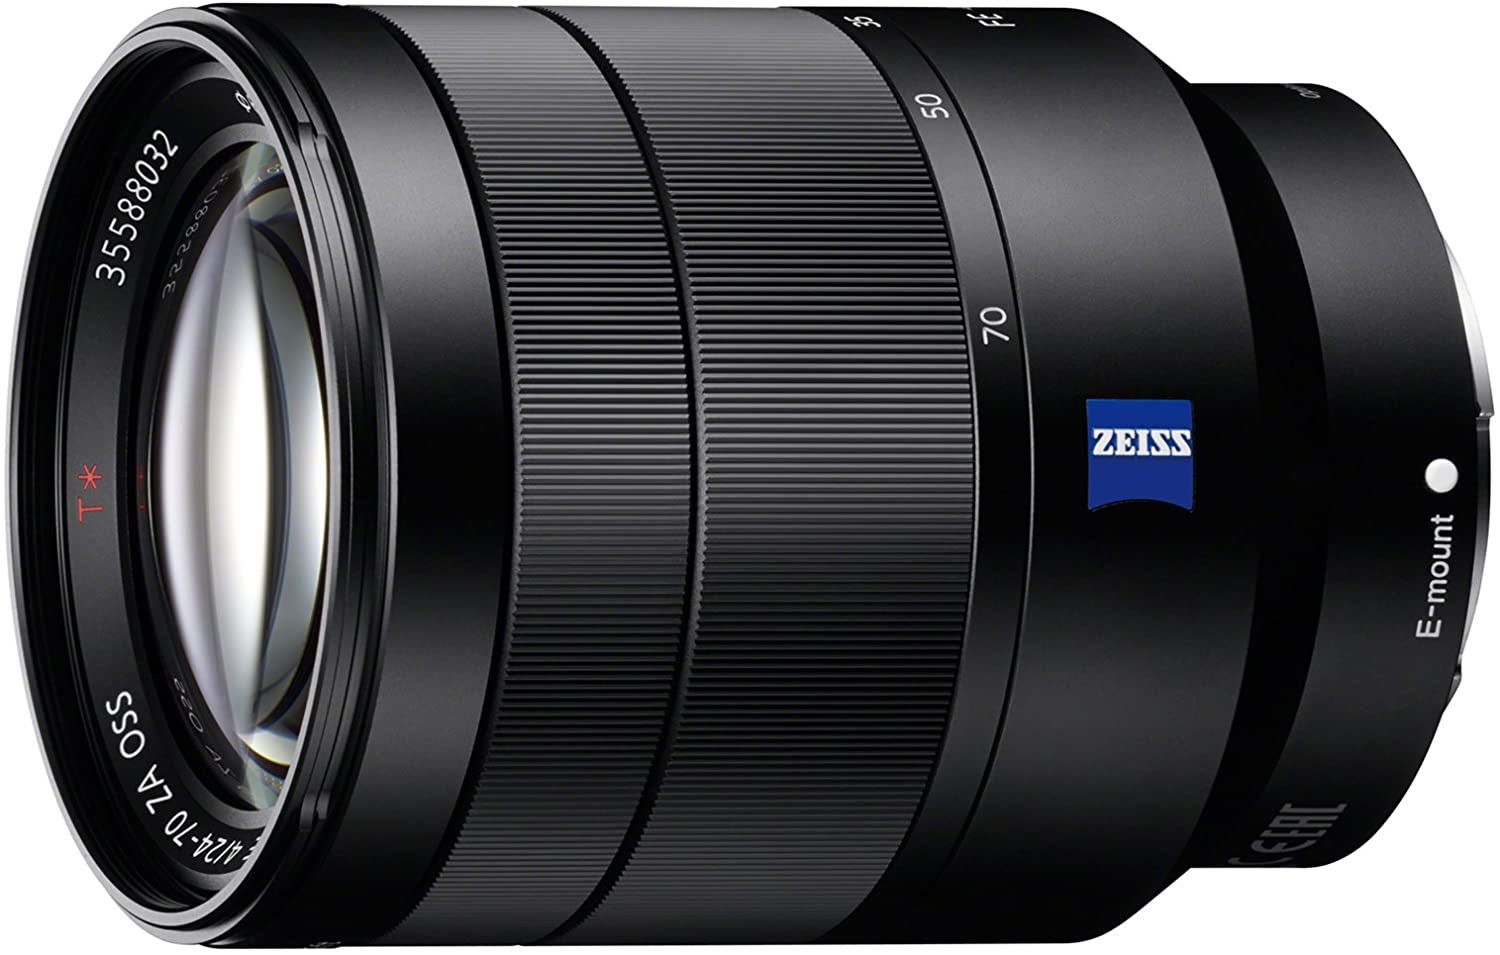 Hot Deals: $200 Off on Sony FE 24-70mm F2.8 GM, Sony 24-70mm f/4 Vario-Tessar T and $250 Off on Sony Vario-Tessar T* FE 16-35mm f/4 ZA OSS FE OSS